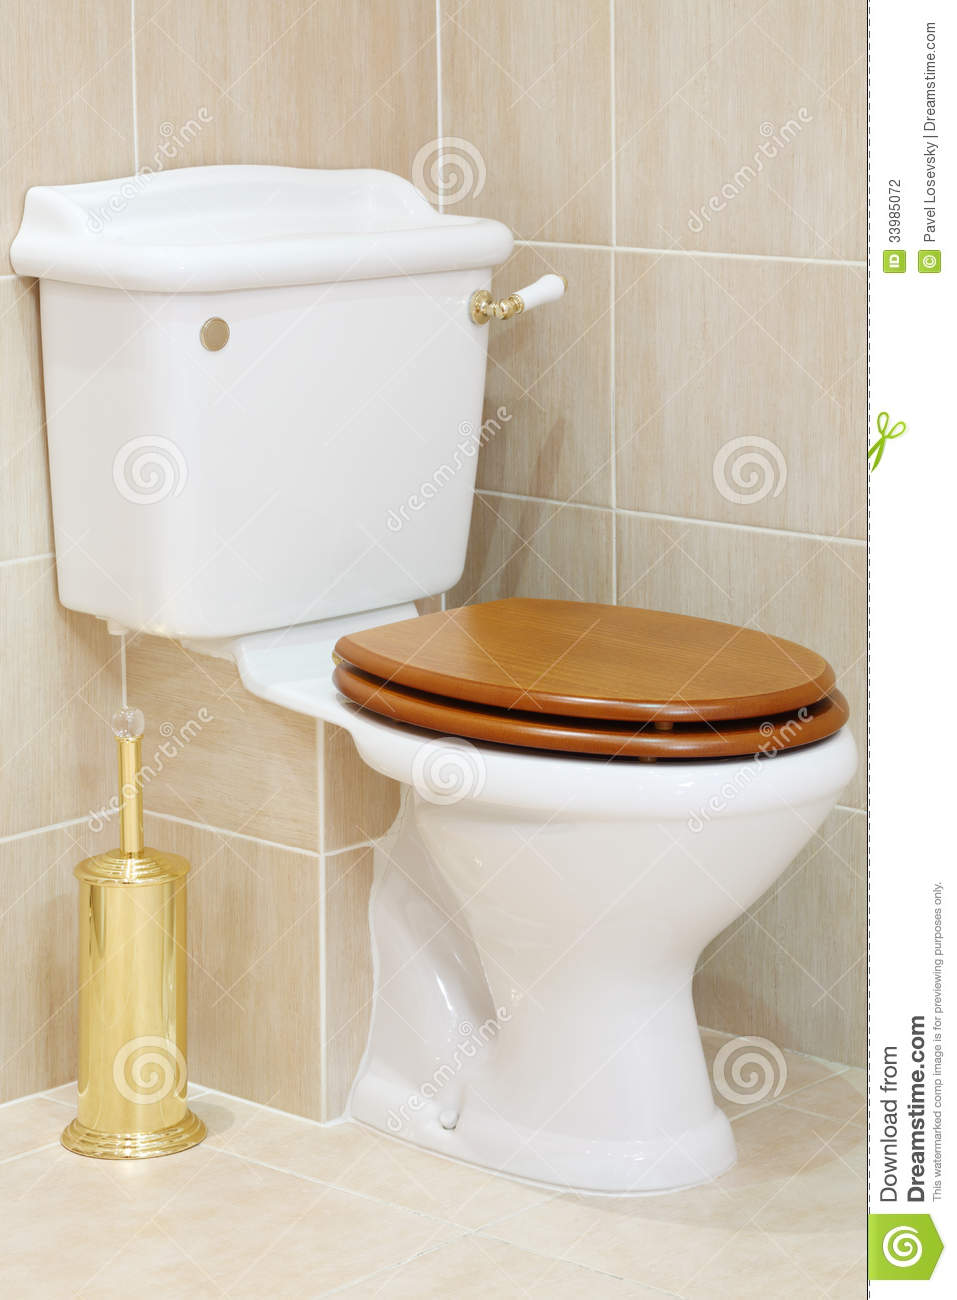 Wood Toilet Lid : Beautiful clean and white toilet with wooden lid stock